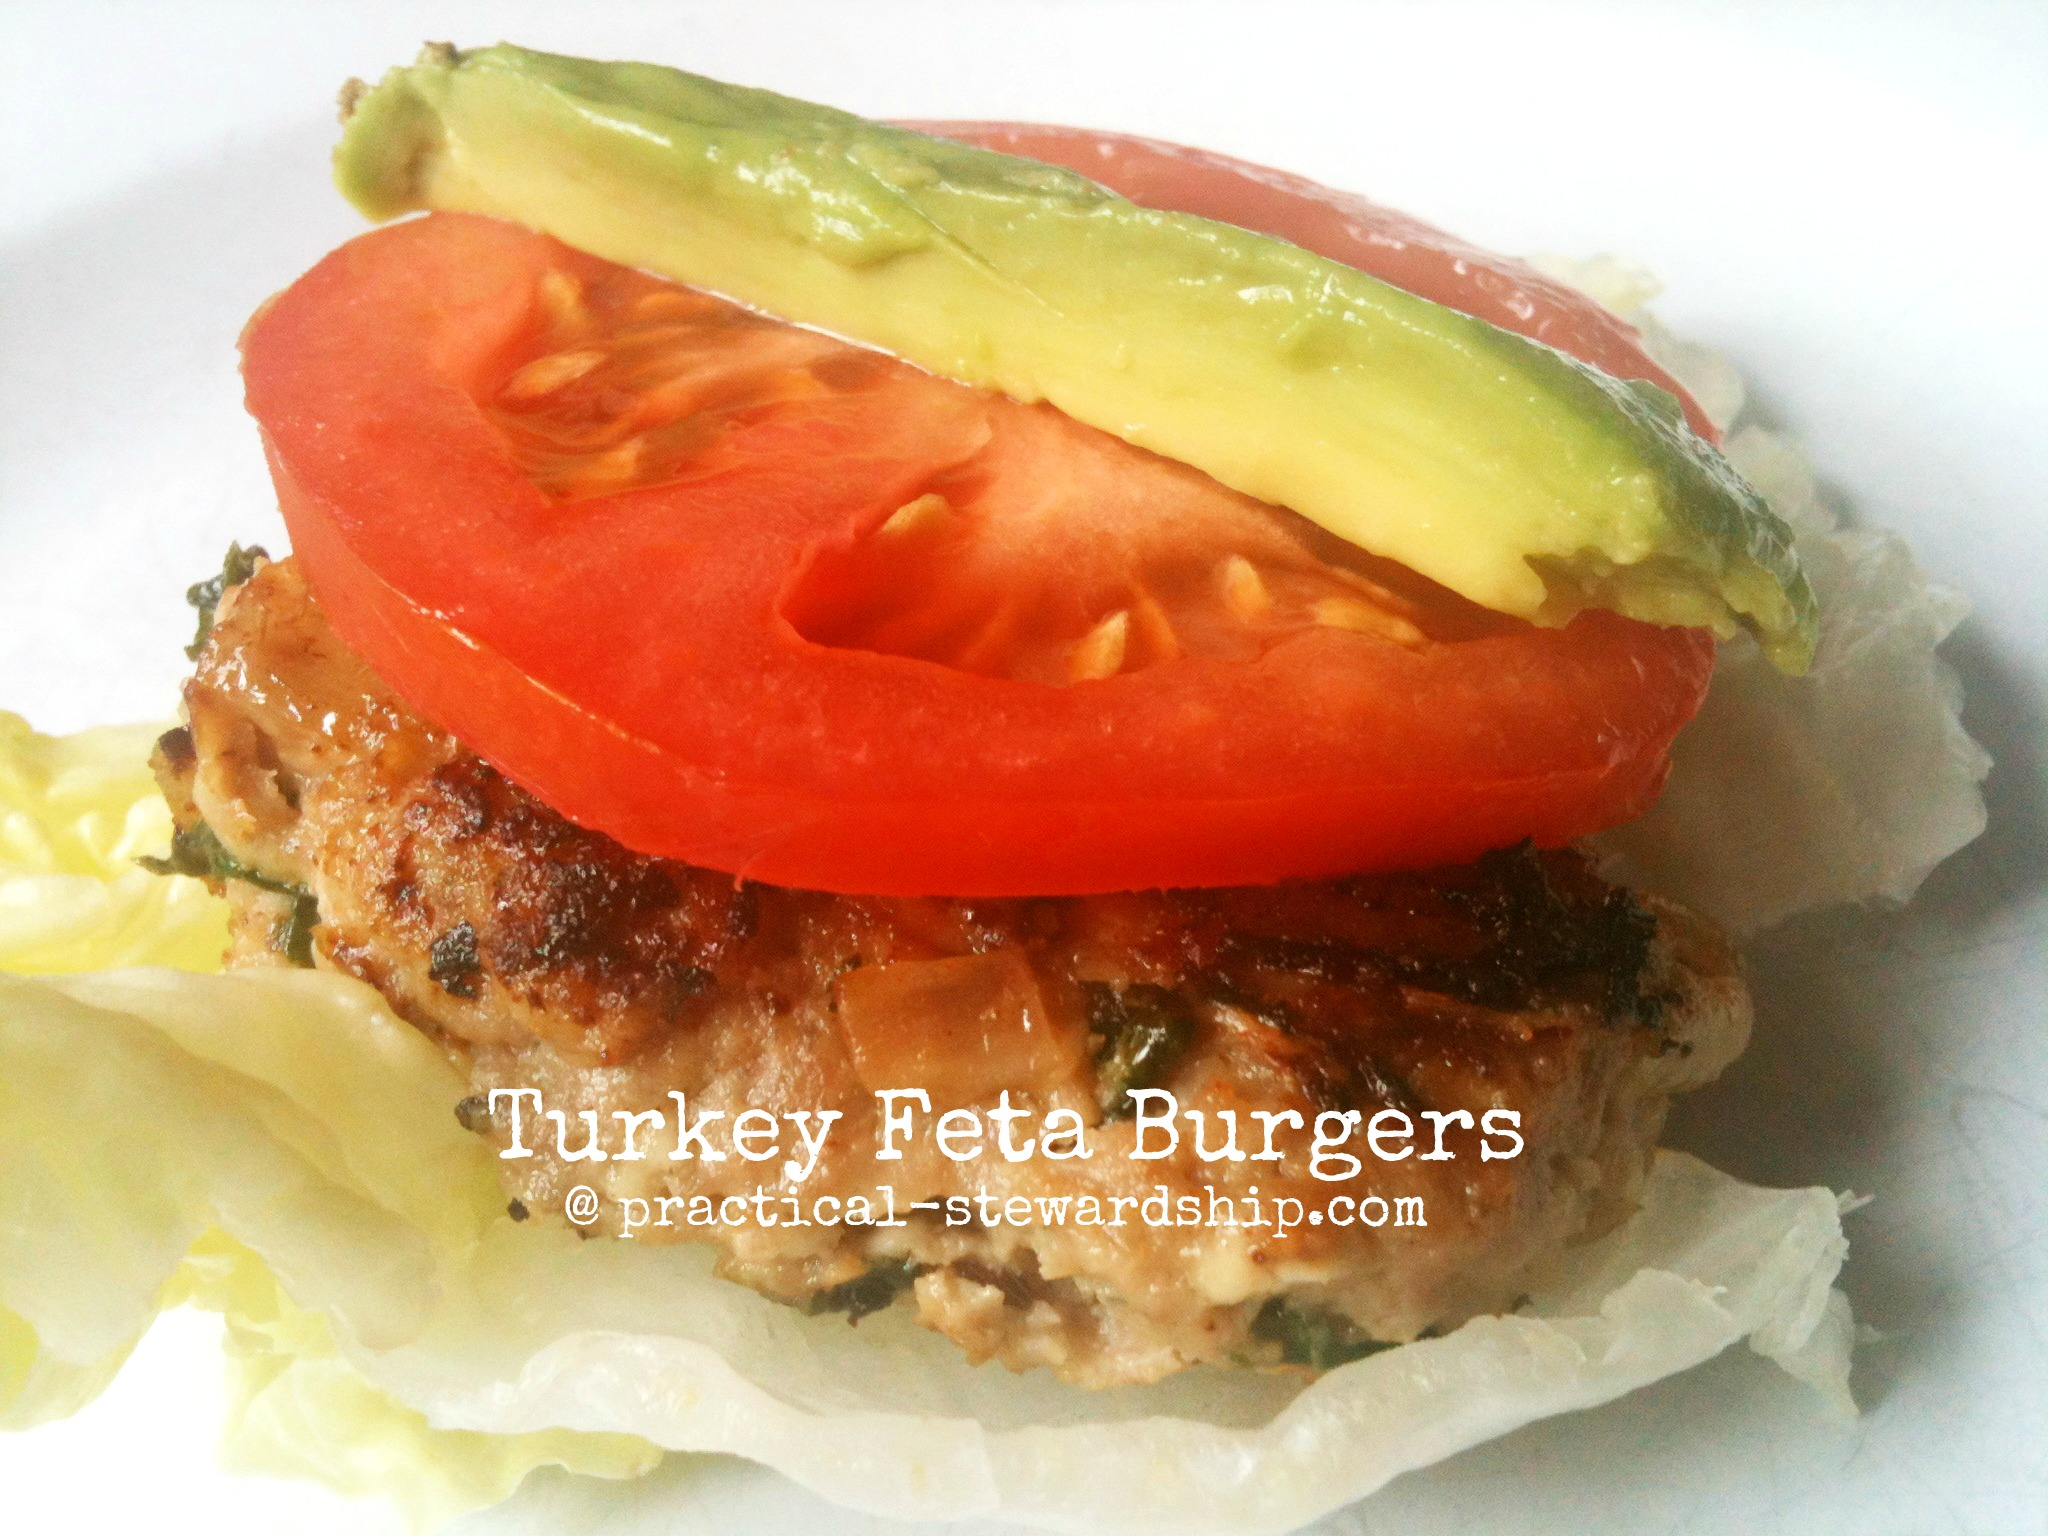 Turkey Feta Burgers